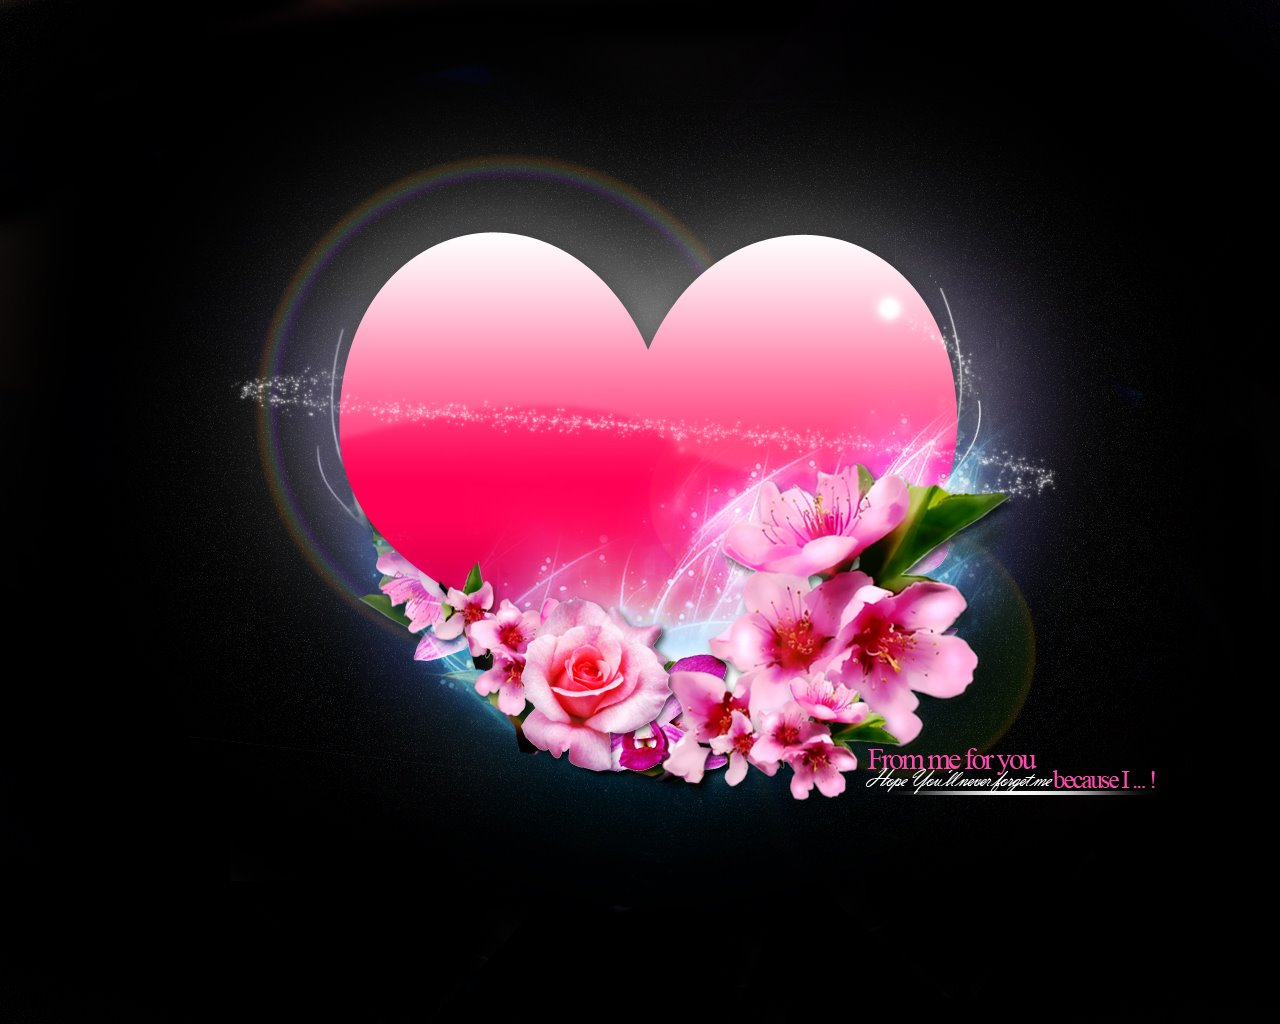 Heart & flowers 559.12 Kb